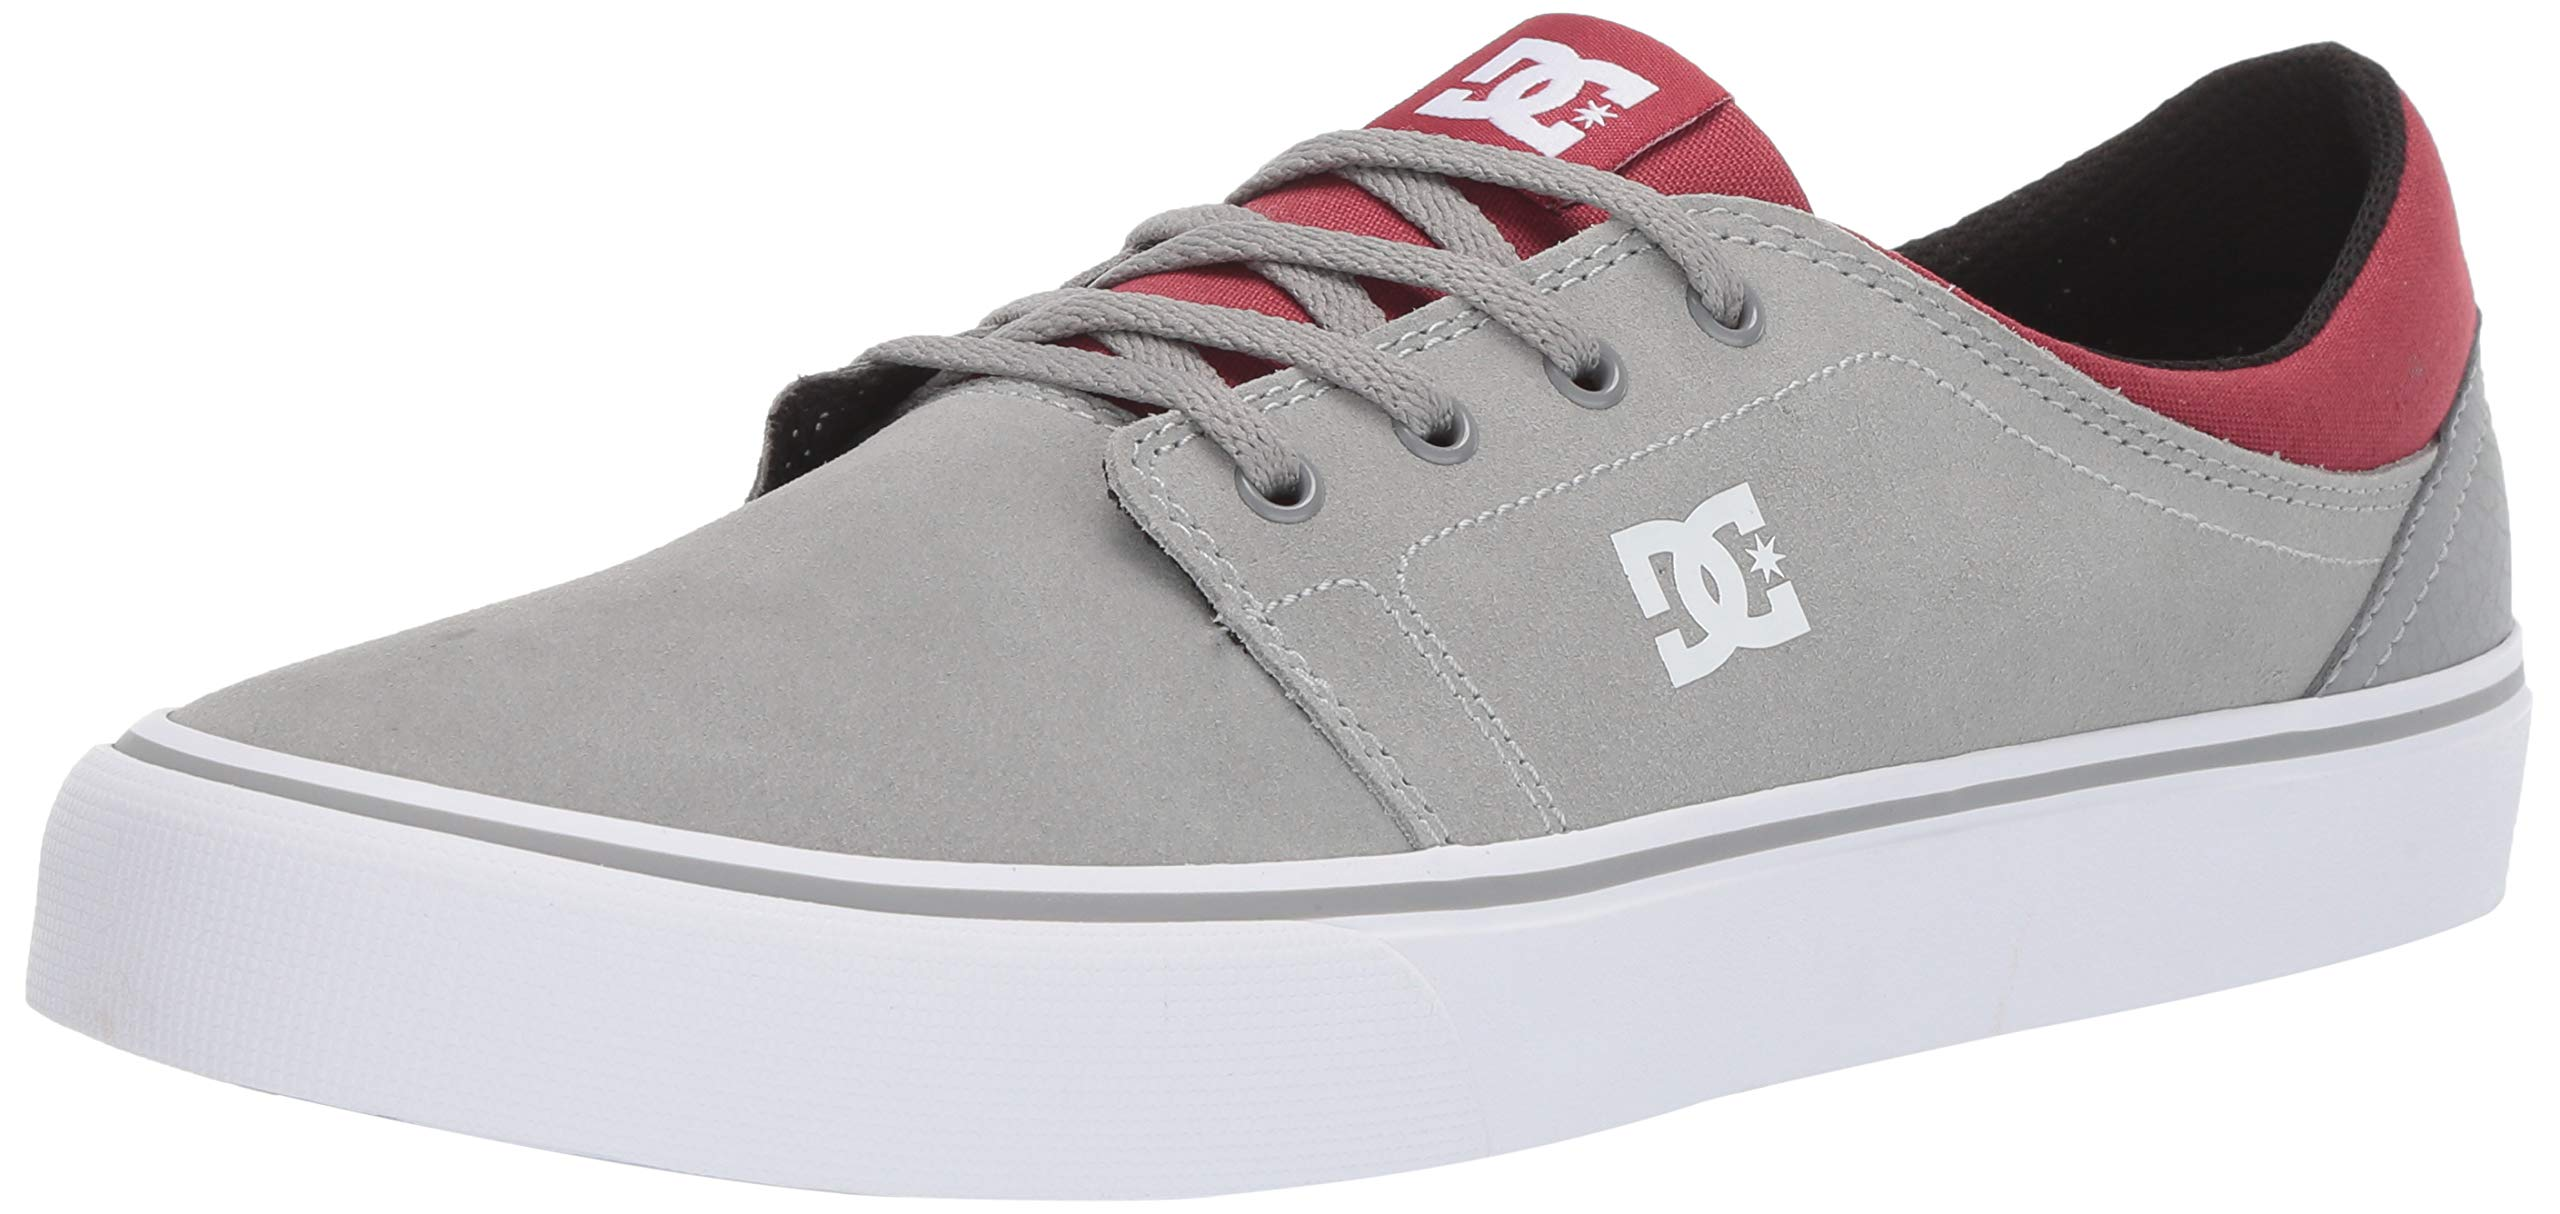 DC Men's Trase SD Skate Shoe, Grey/Dark red, 6.5 M US by DC